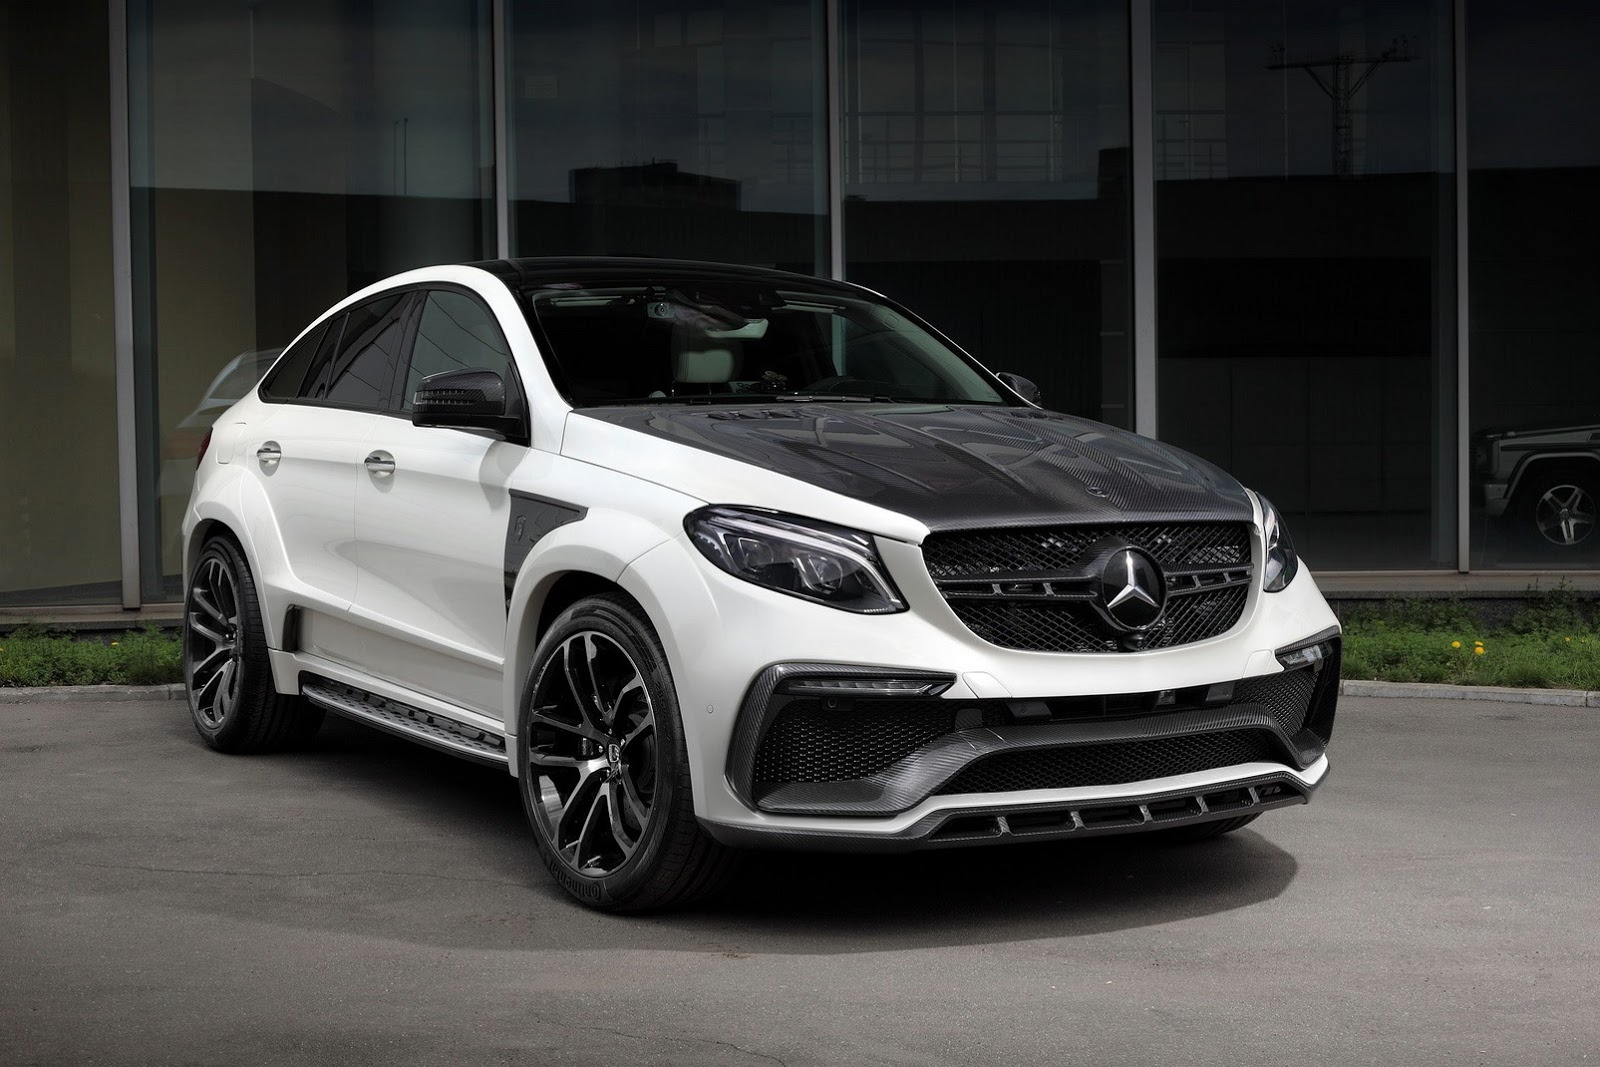 Suv Wallpapers Hd Topcar Unveils Quot Inferno Quot Tuning Kit For Mercedes Gle And